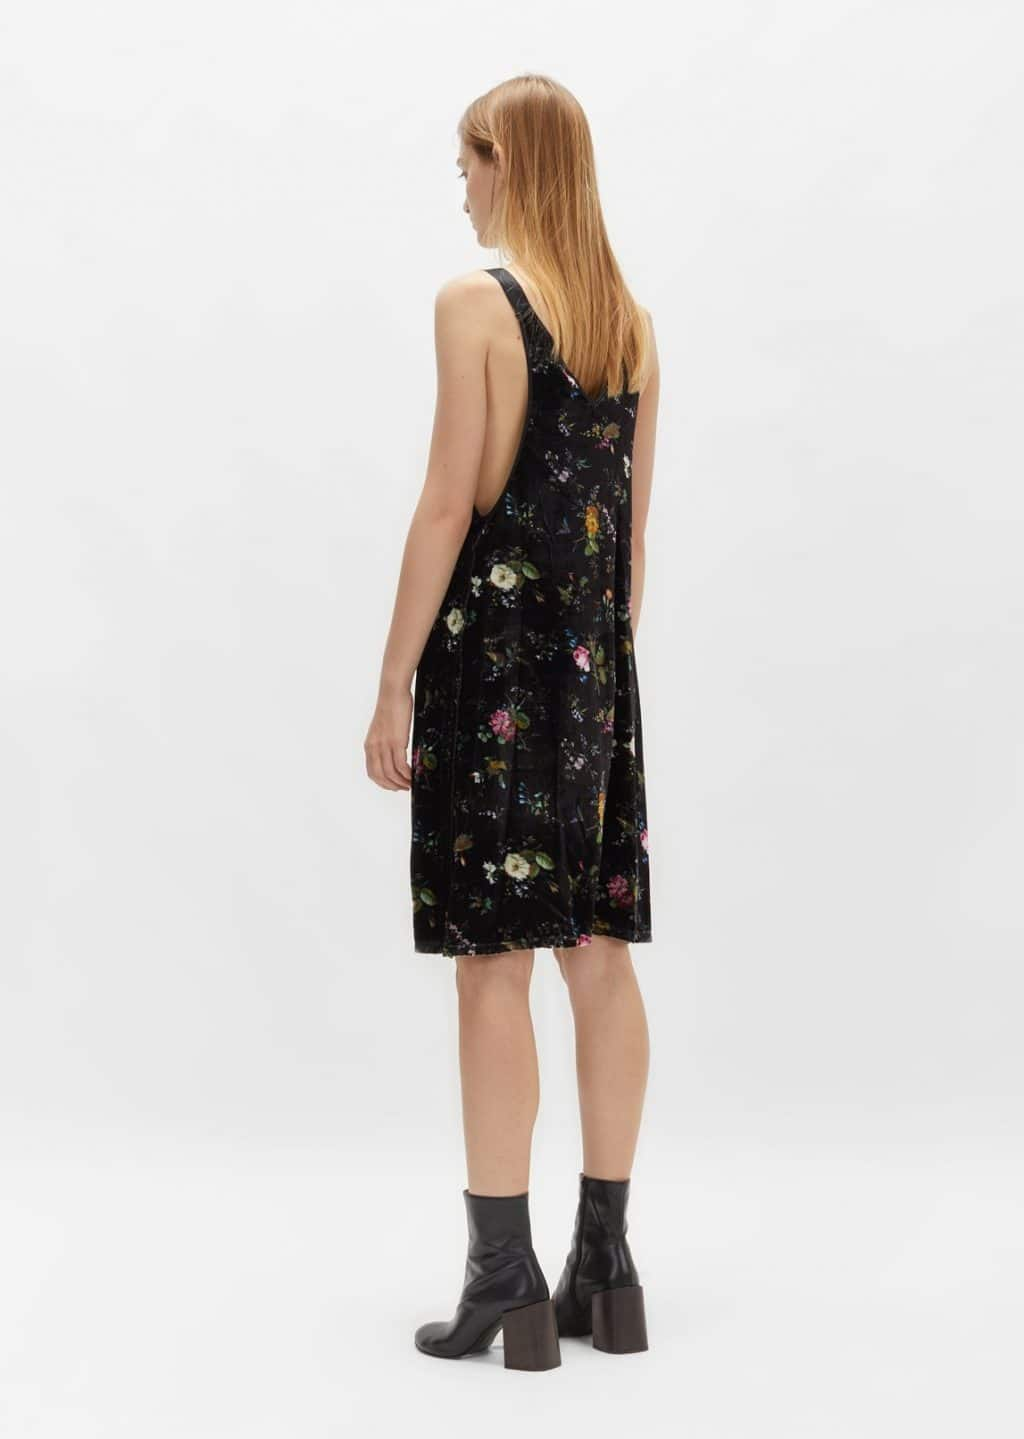 bbf986f94d99 R13 Velvet Floral Slip Black Dress - We Select Dresses